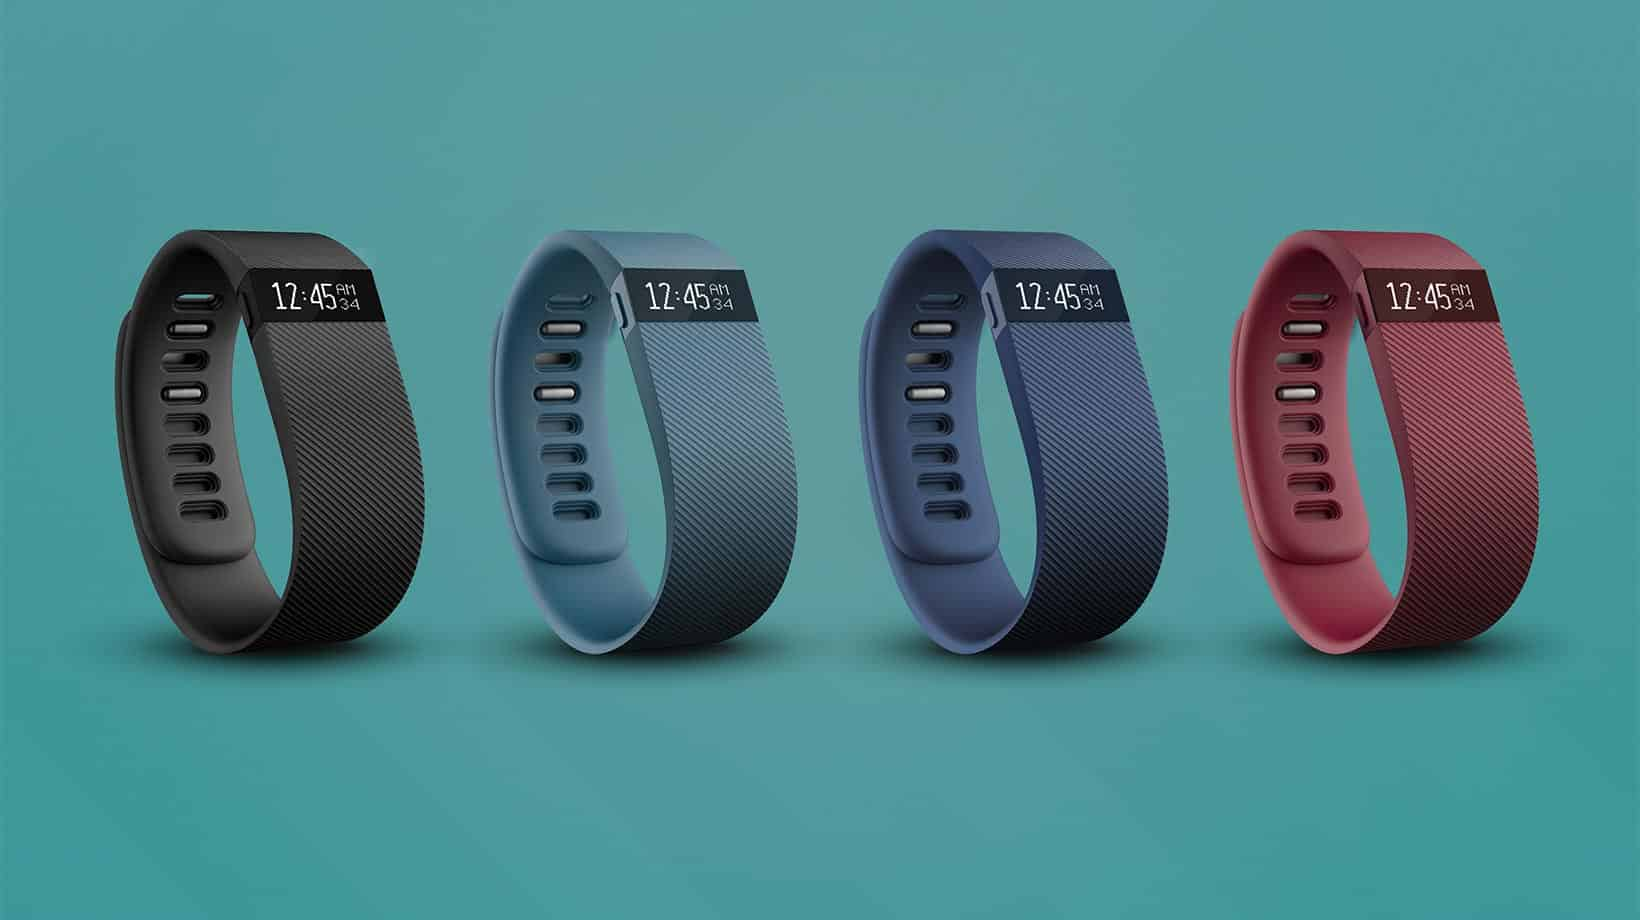 Fitbit Charge Wireless Activity & Sleep Wristband Gadget for Health